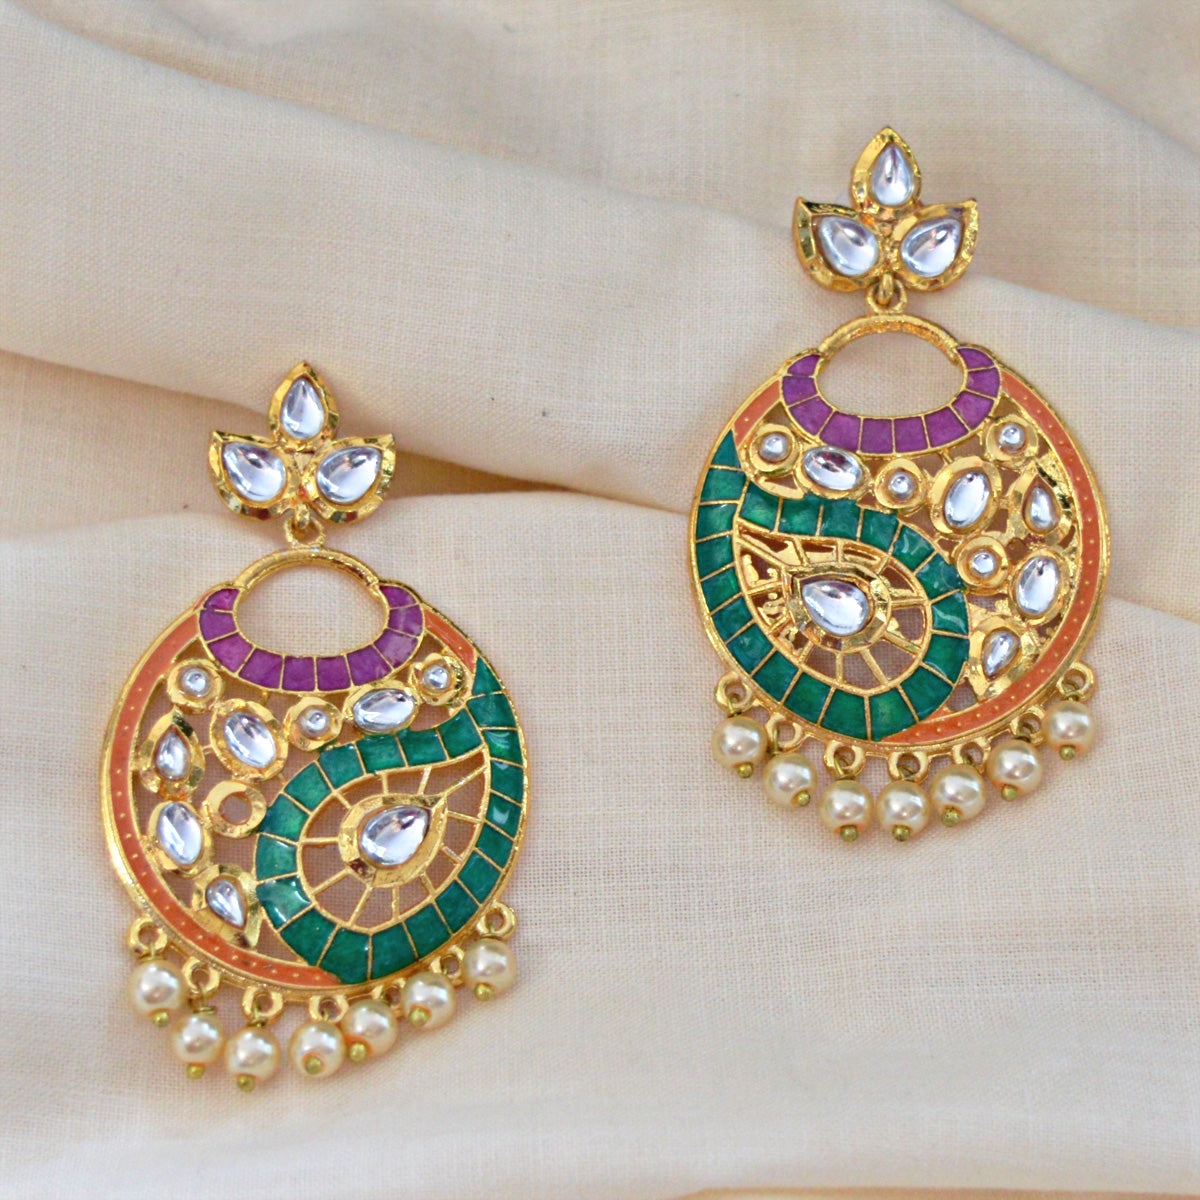 Mk Jewellers Voilet Green And Orange Color Meenakari Circle Cutting Dangler Earring-MK JEWELLERS1-Earring